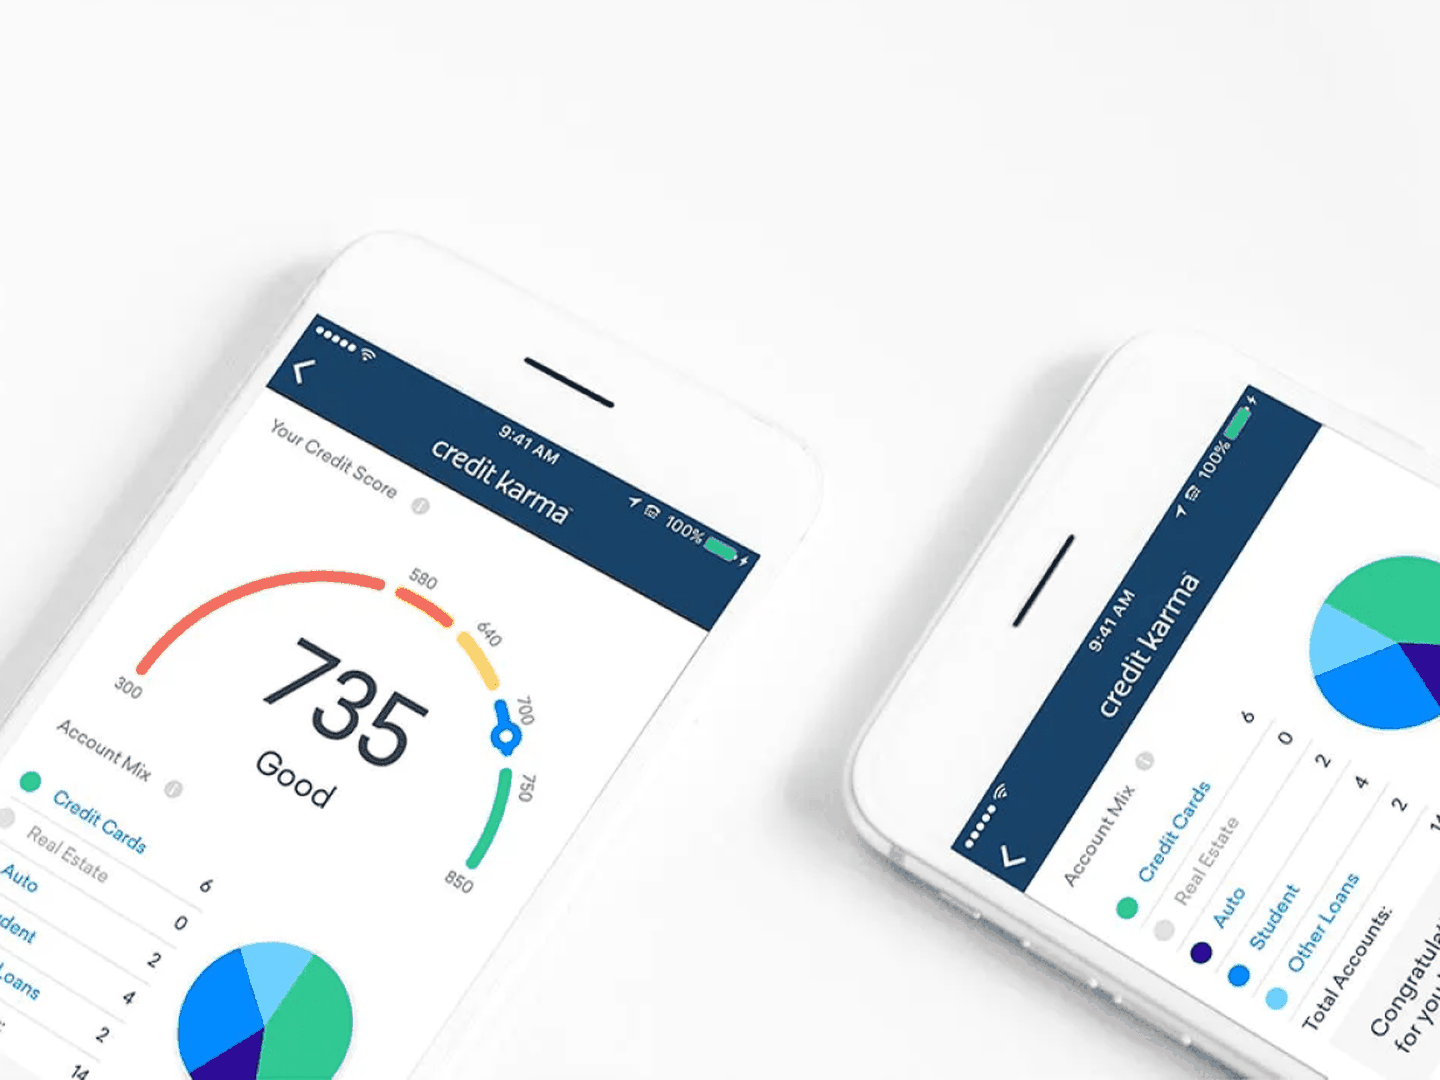 Credit Karma case study featured image